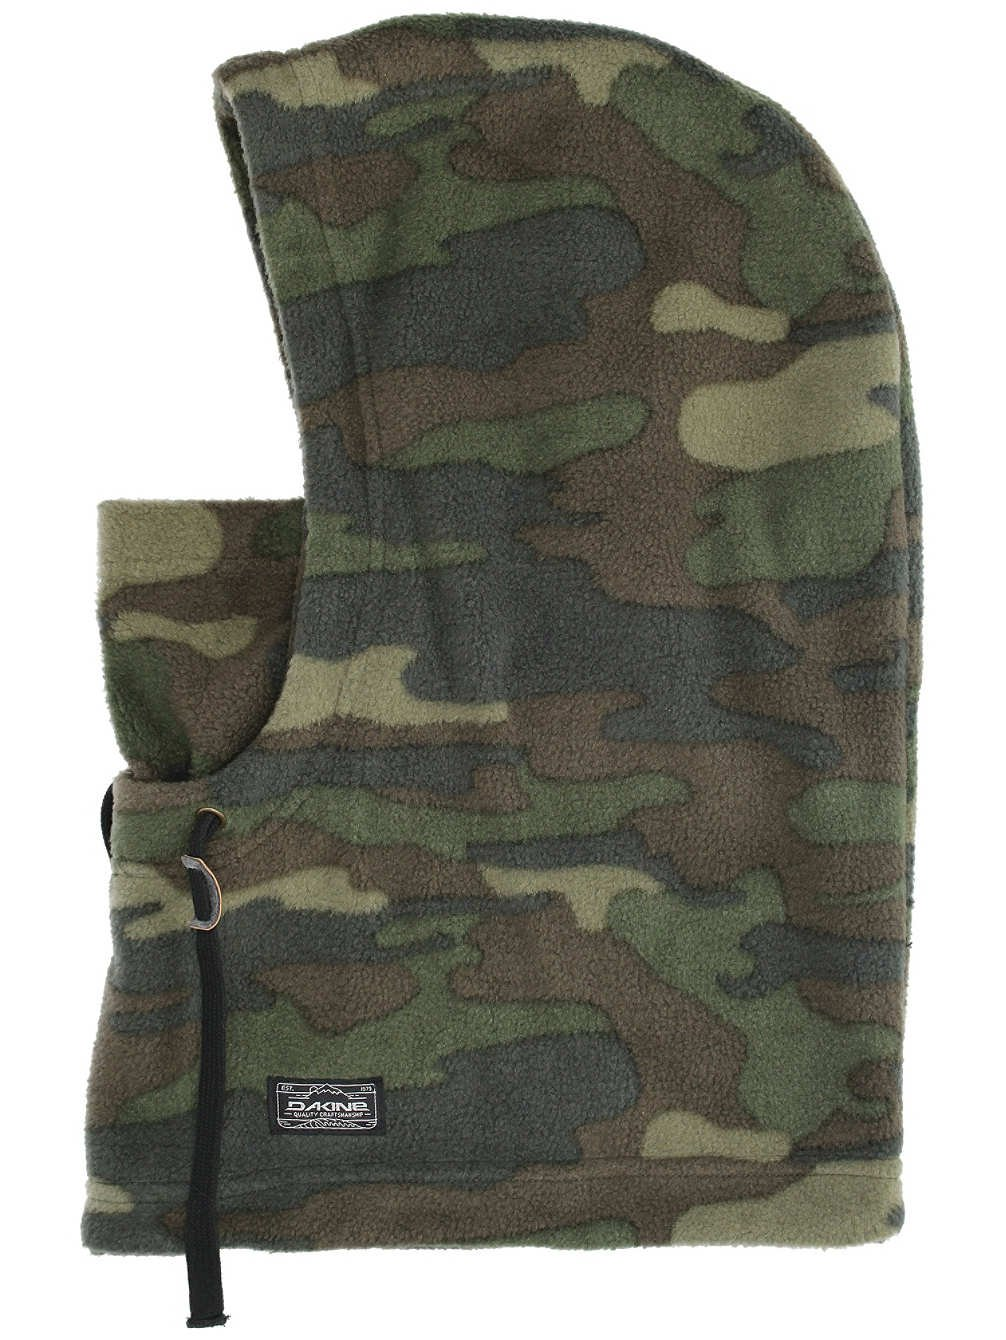 Dakine Men's Hunter Balaclava, Camo, OS